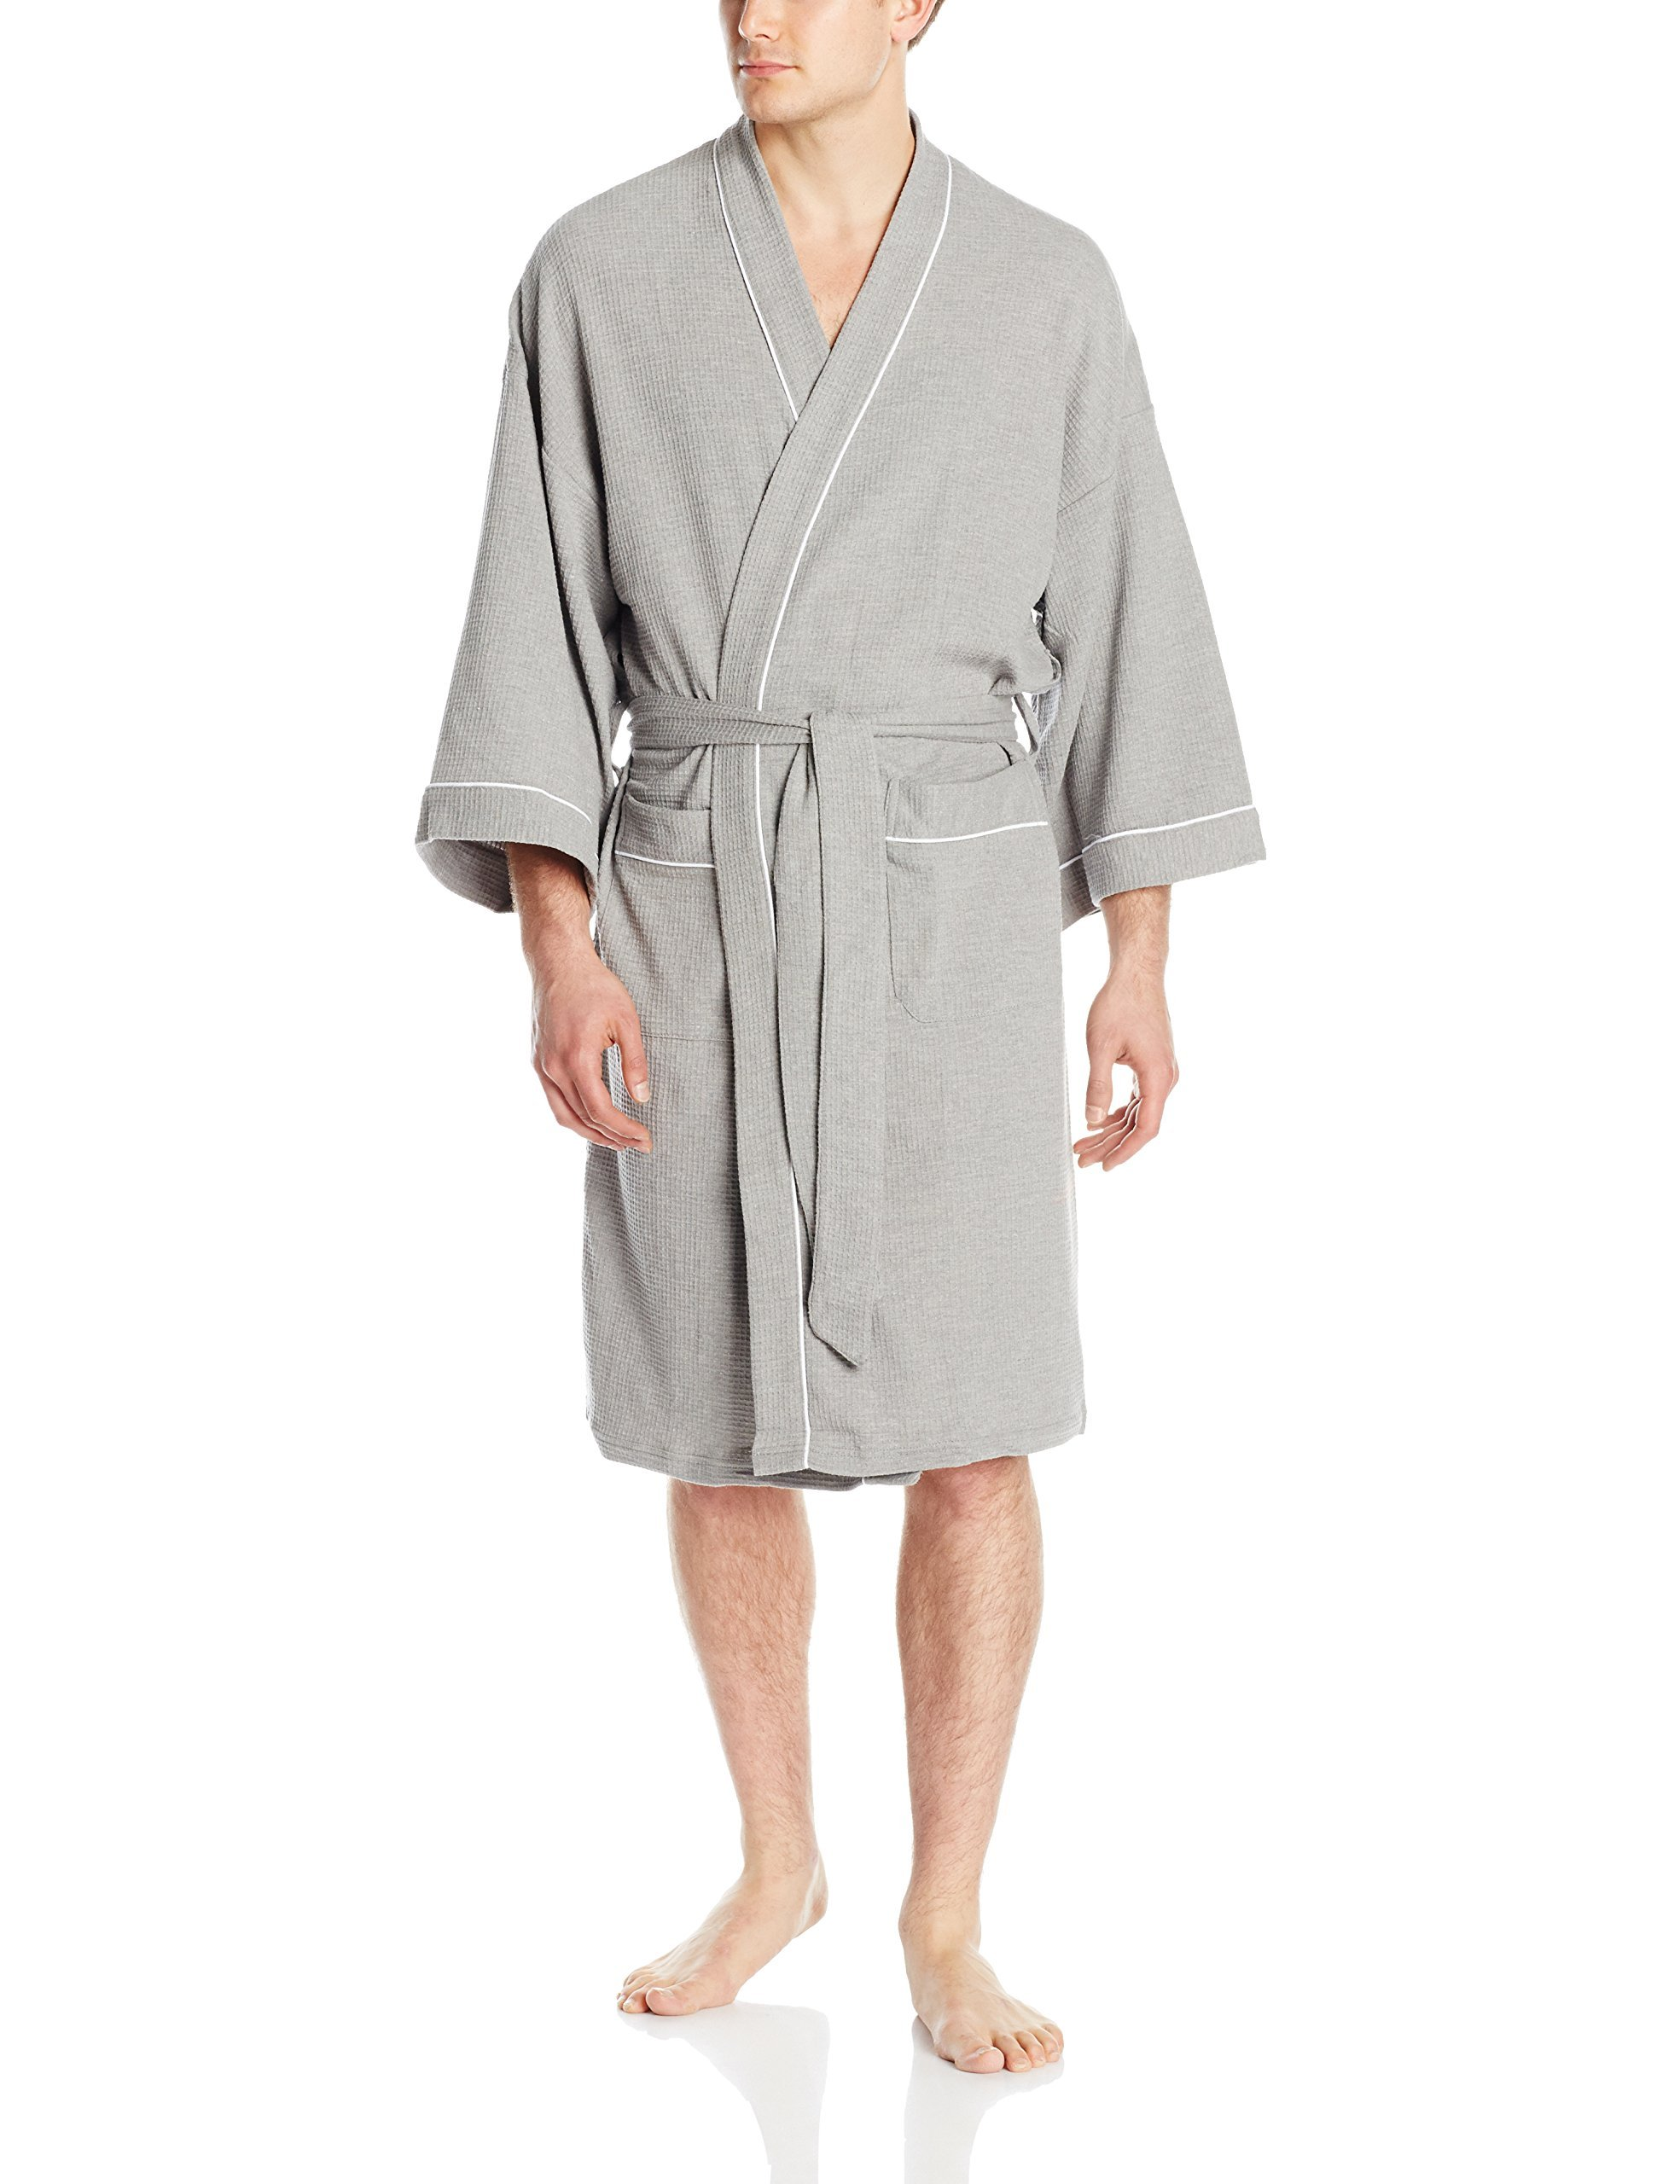 WULFUL Men's Cotton Lightweight Bathrobe Waffle-Knit Kimono Robe Soft Spa Bathrobe Nightgown Sleepwear (Grey, L)